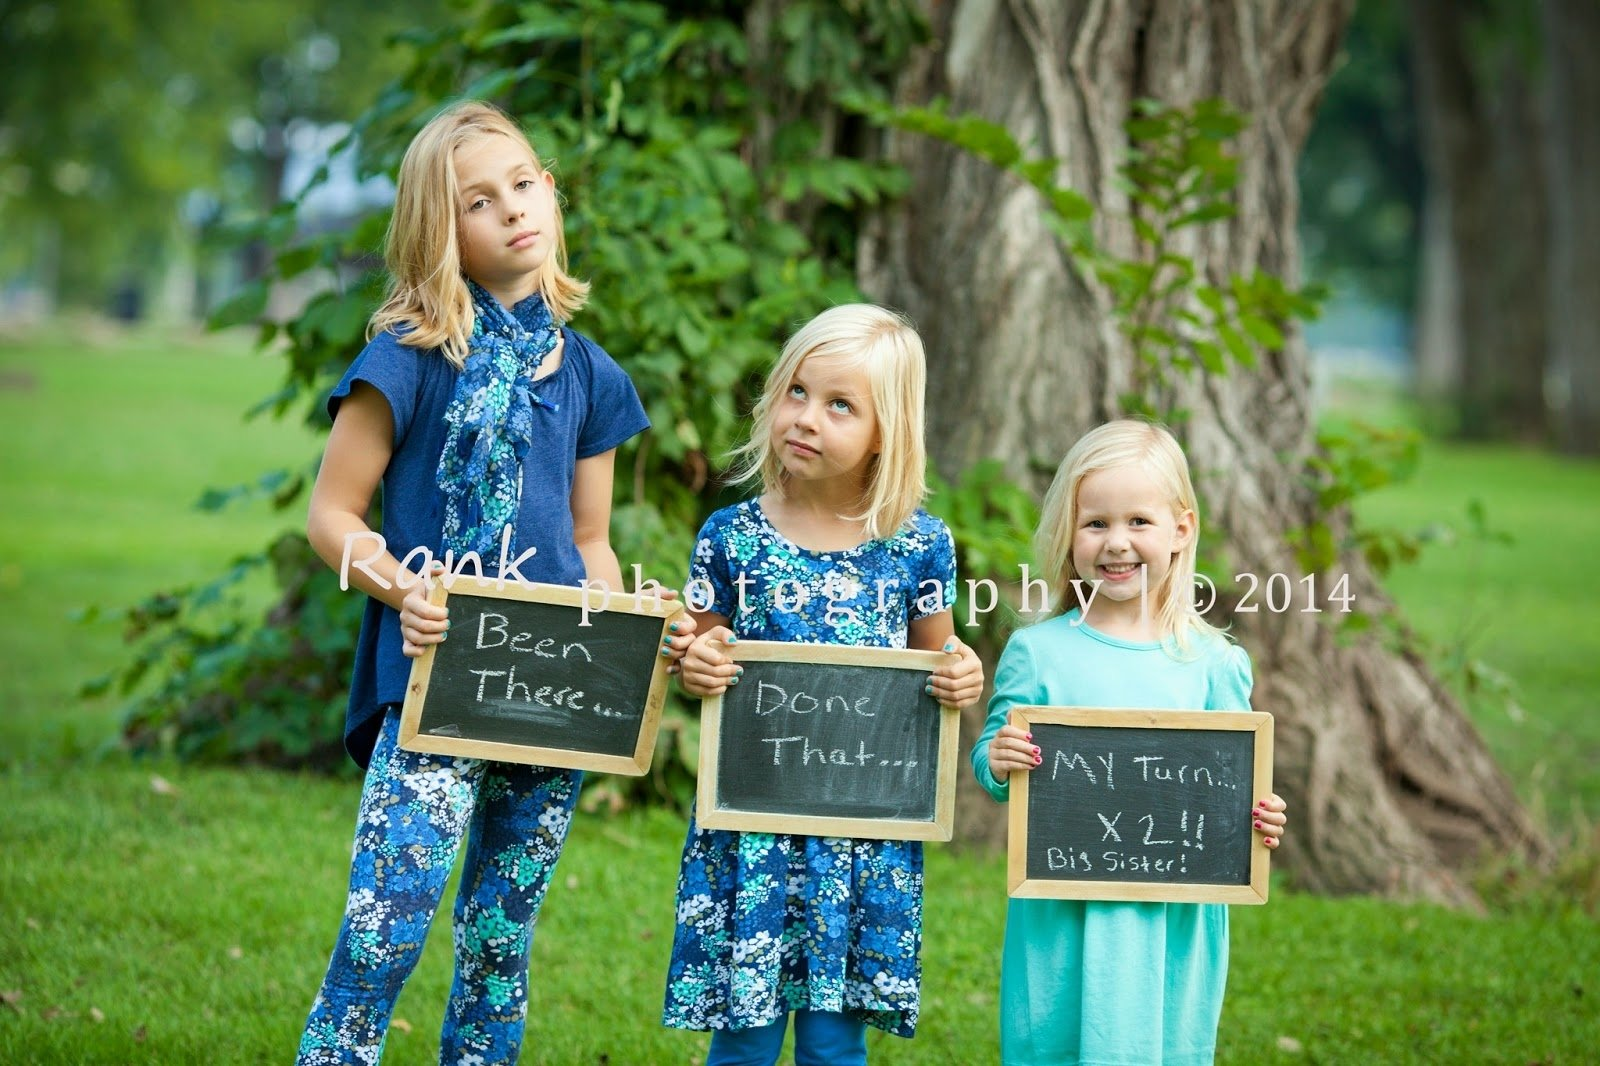 unique family photo pregnancy announcement ideas selection | photo